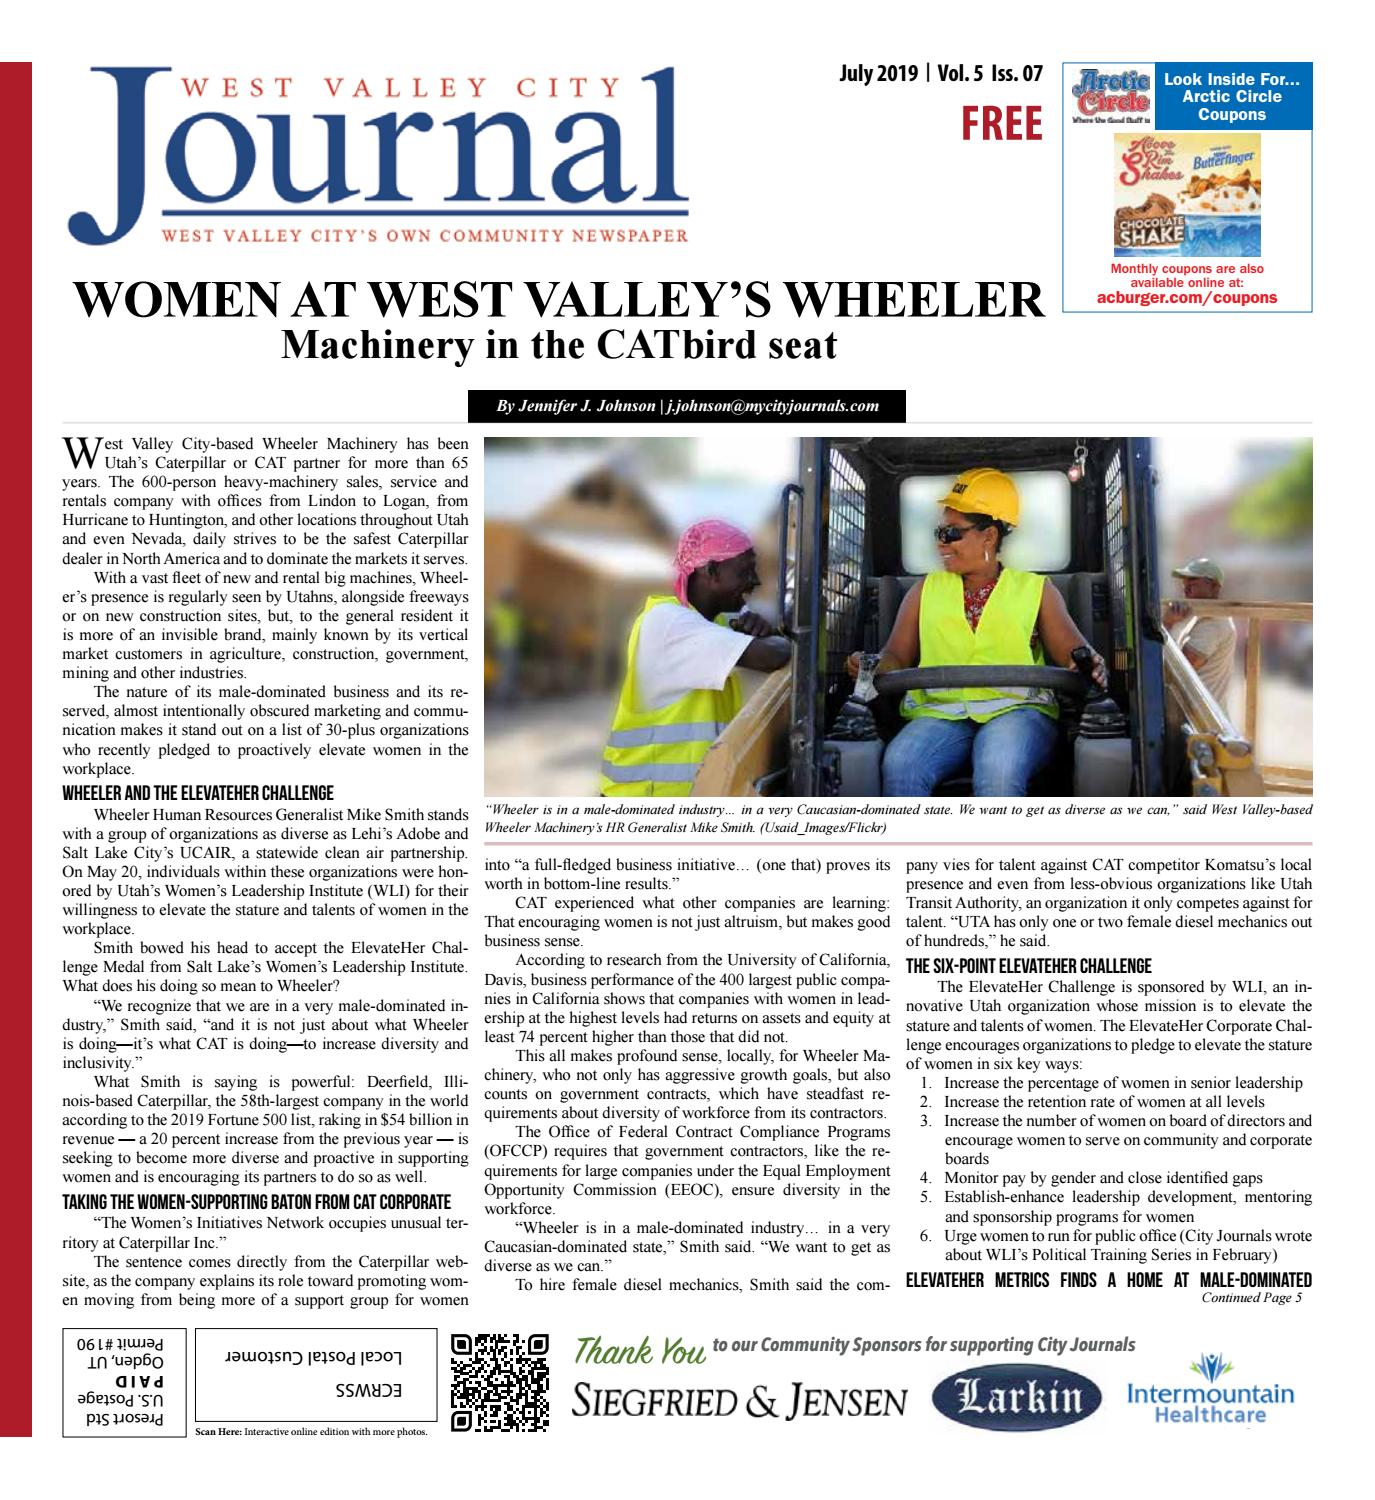 West Valley Journal July 2019